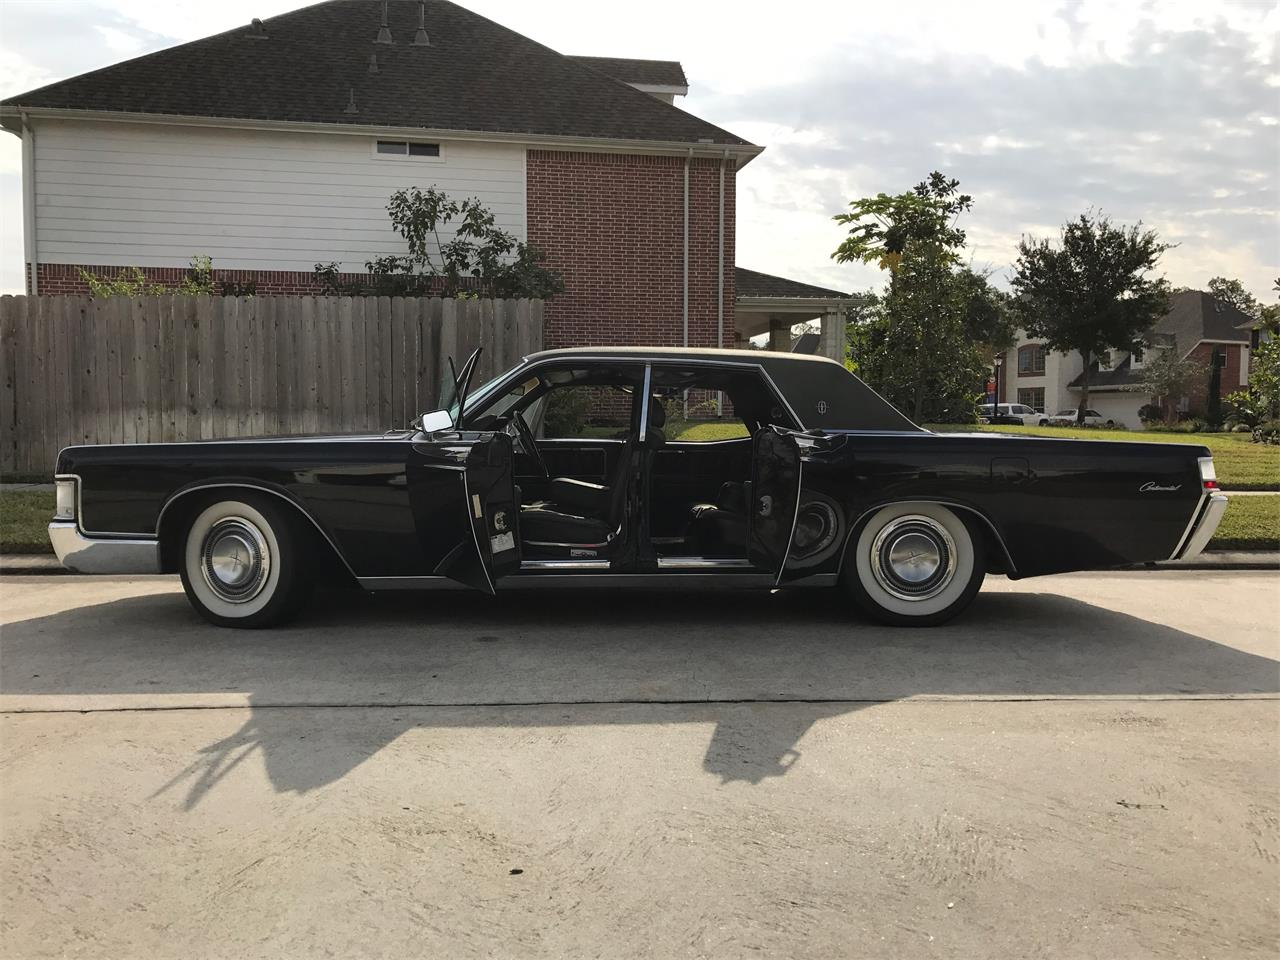 1969 lincoln continental for sale classiccars com cc 1086697large picture of classic \u002769 continental located in pearland texas offered by a private seller